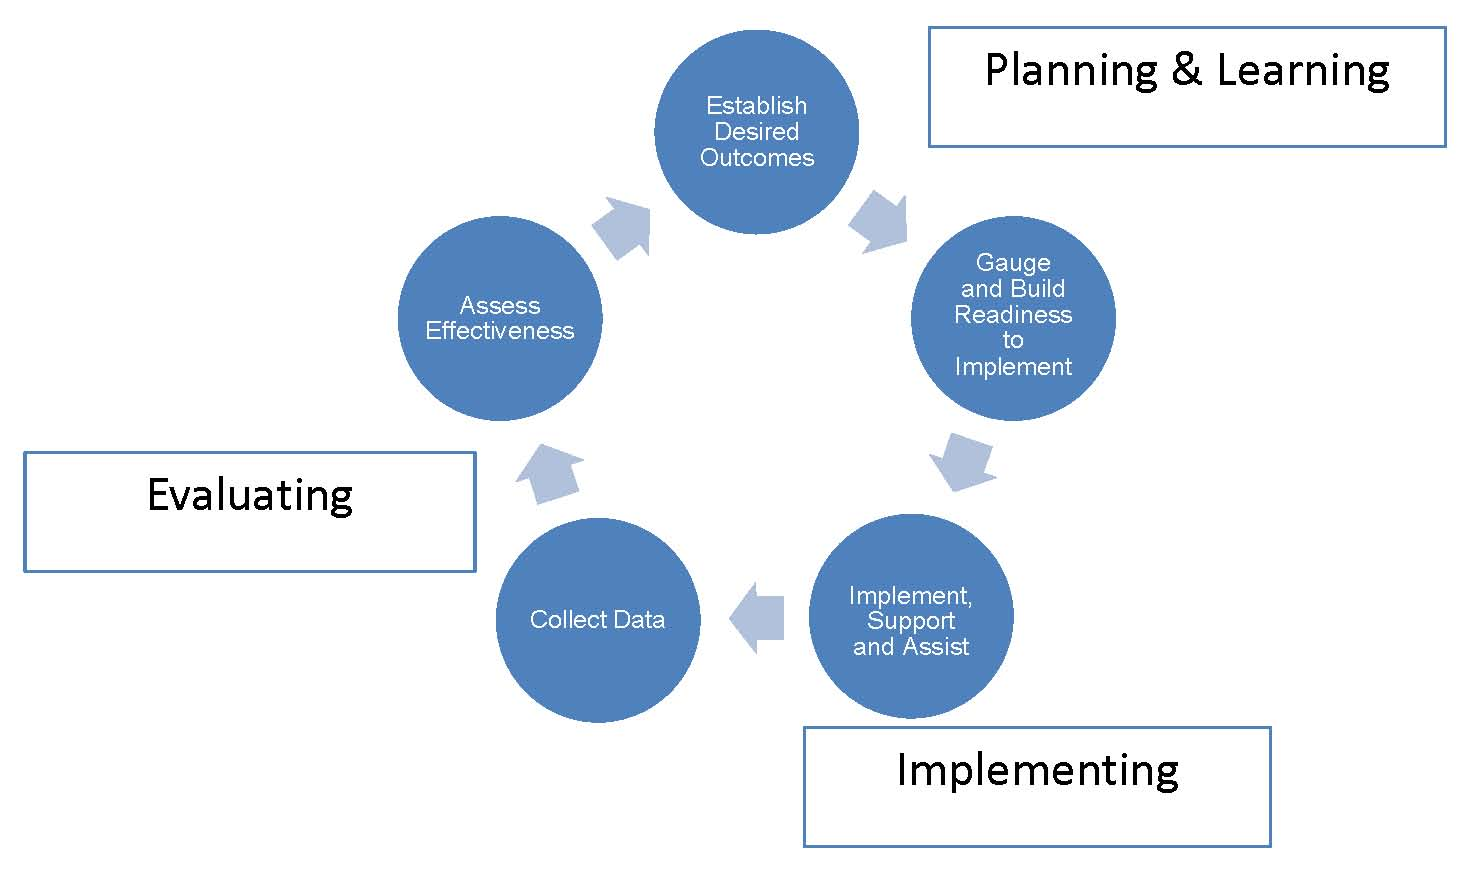 Defined process of: planning and learning, implementing, and evaluating